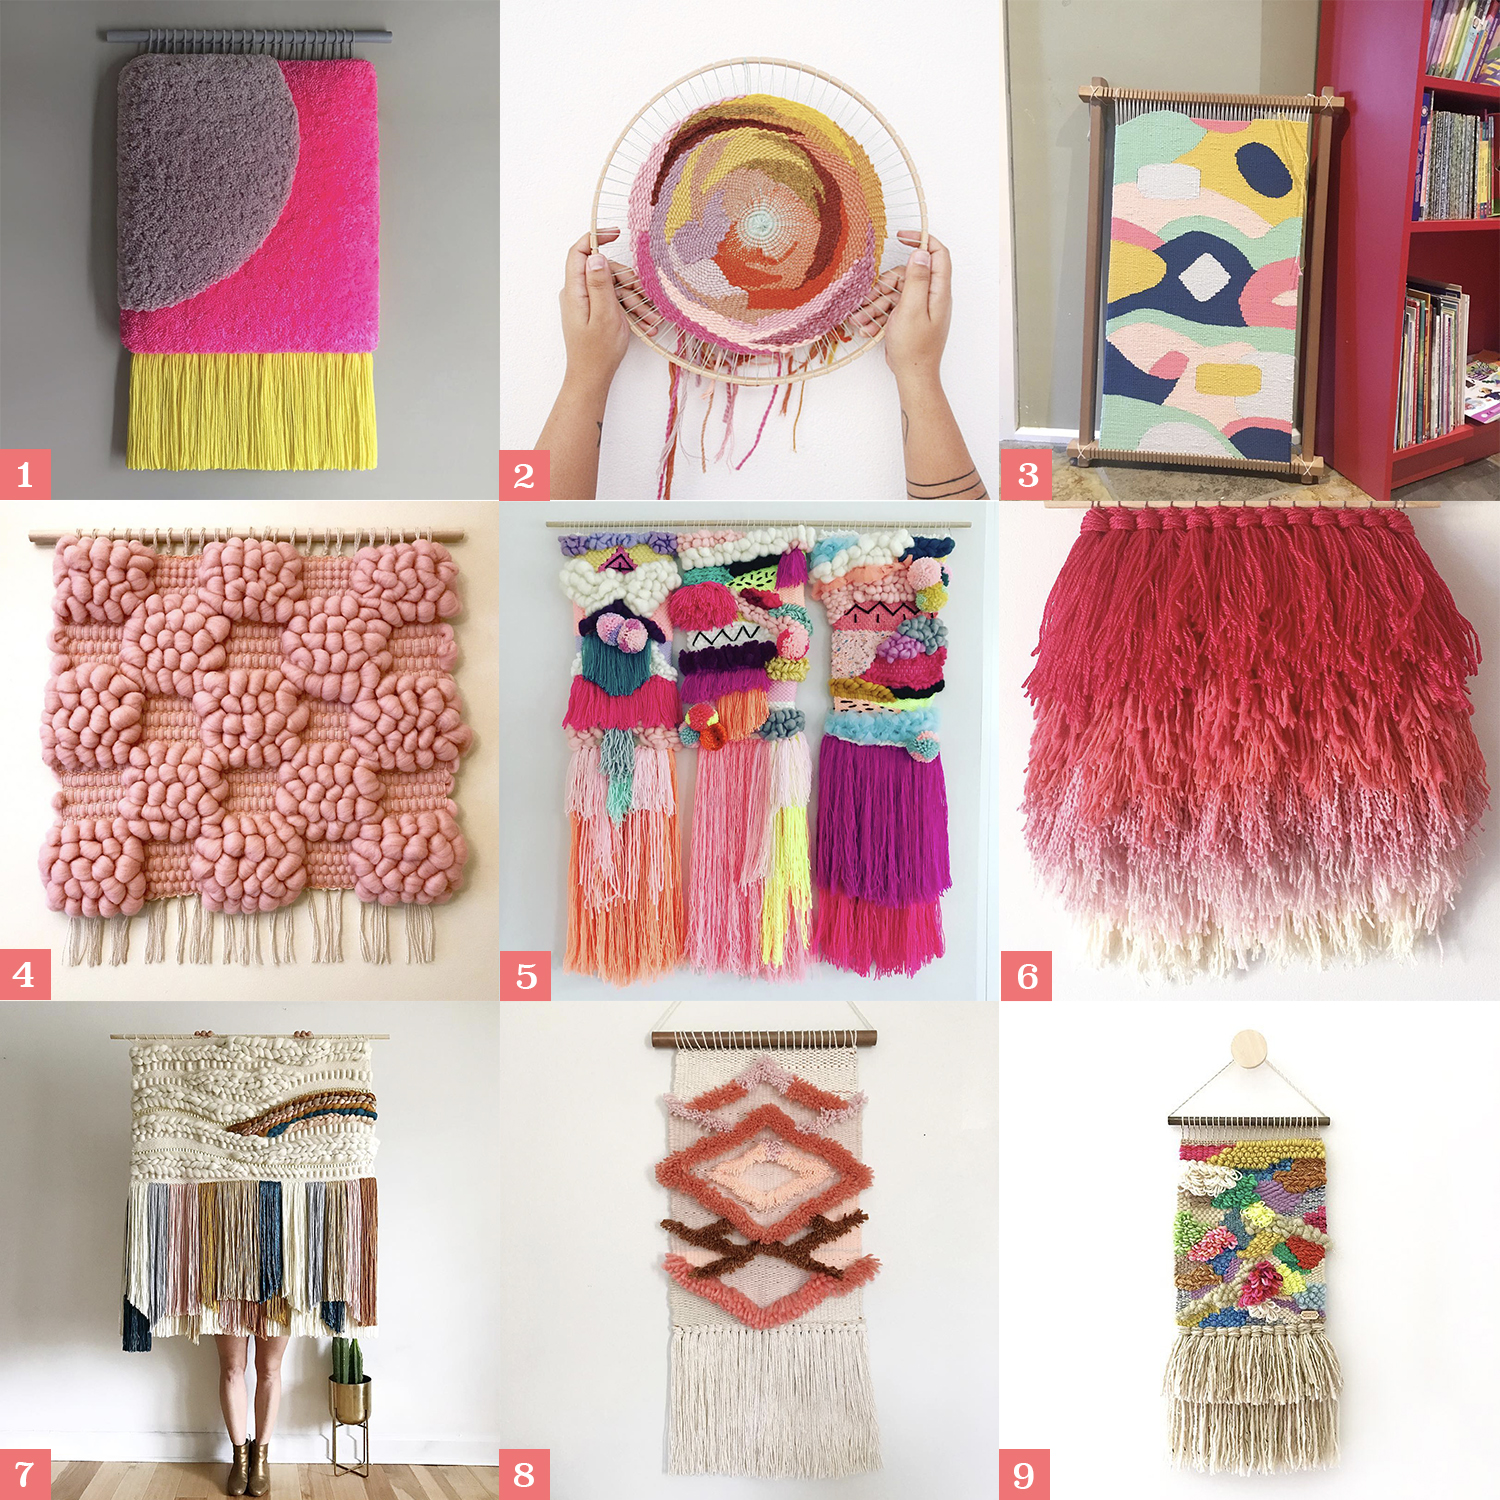 1.  Jujujust  2.  Two Hand Textile Studio   3.  Ada Olive Handmade  4.  Soft Century  5.  Zoe Loves Ava  6.  Miss Mara Makes  7.  Sun Woven  8.  Smile And Wave  9.  Midnight Weave Co